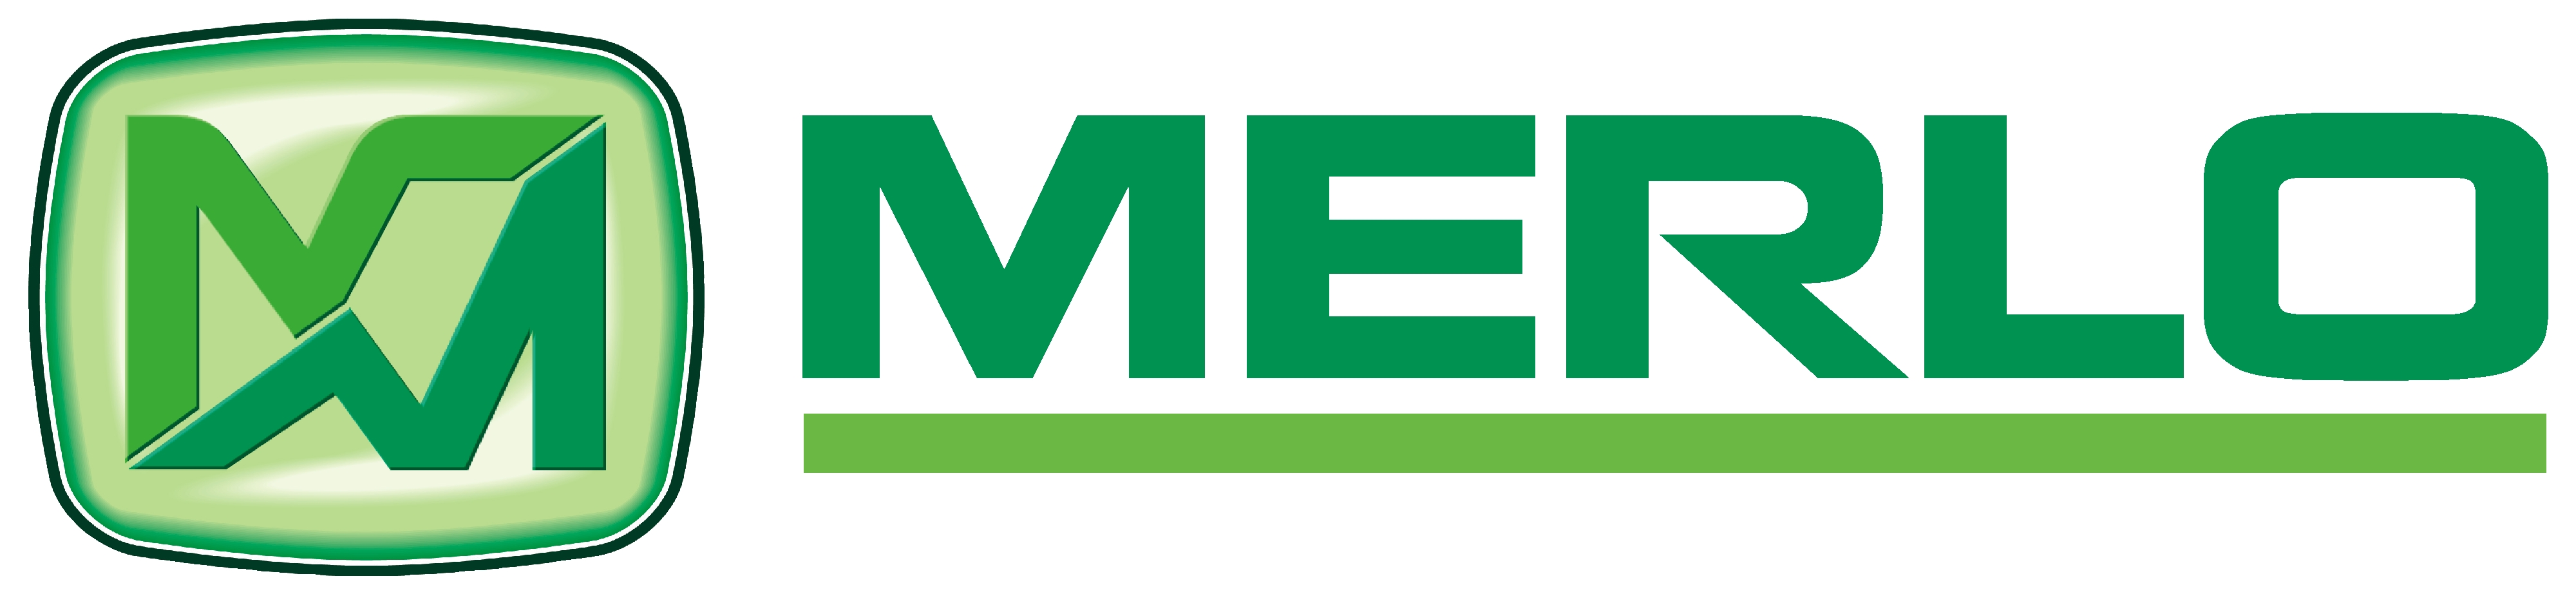 MERLO logo marques selected